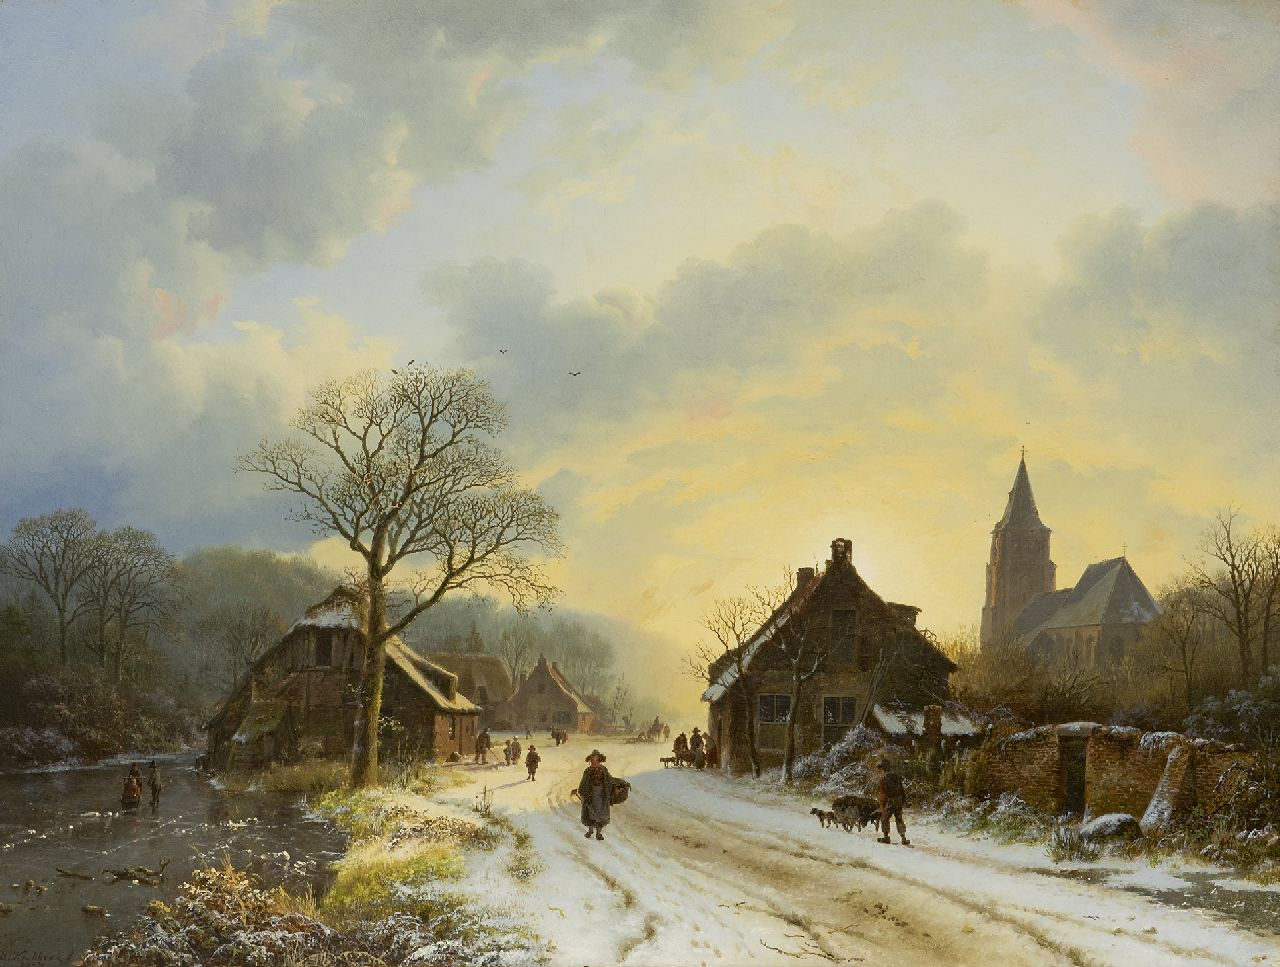 Koekkoek B.C.  | Barend Cornelis Koekkoek | Paintings offered for sale | Winter landscape with landfolk and figures on the ice, oil on canvas 39.7 x 52.4 cm, signed l.l. and dated 1837